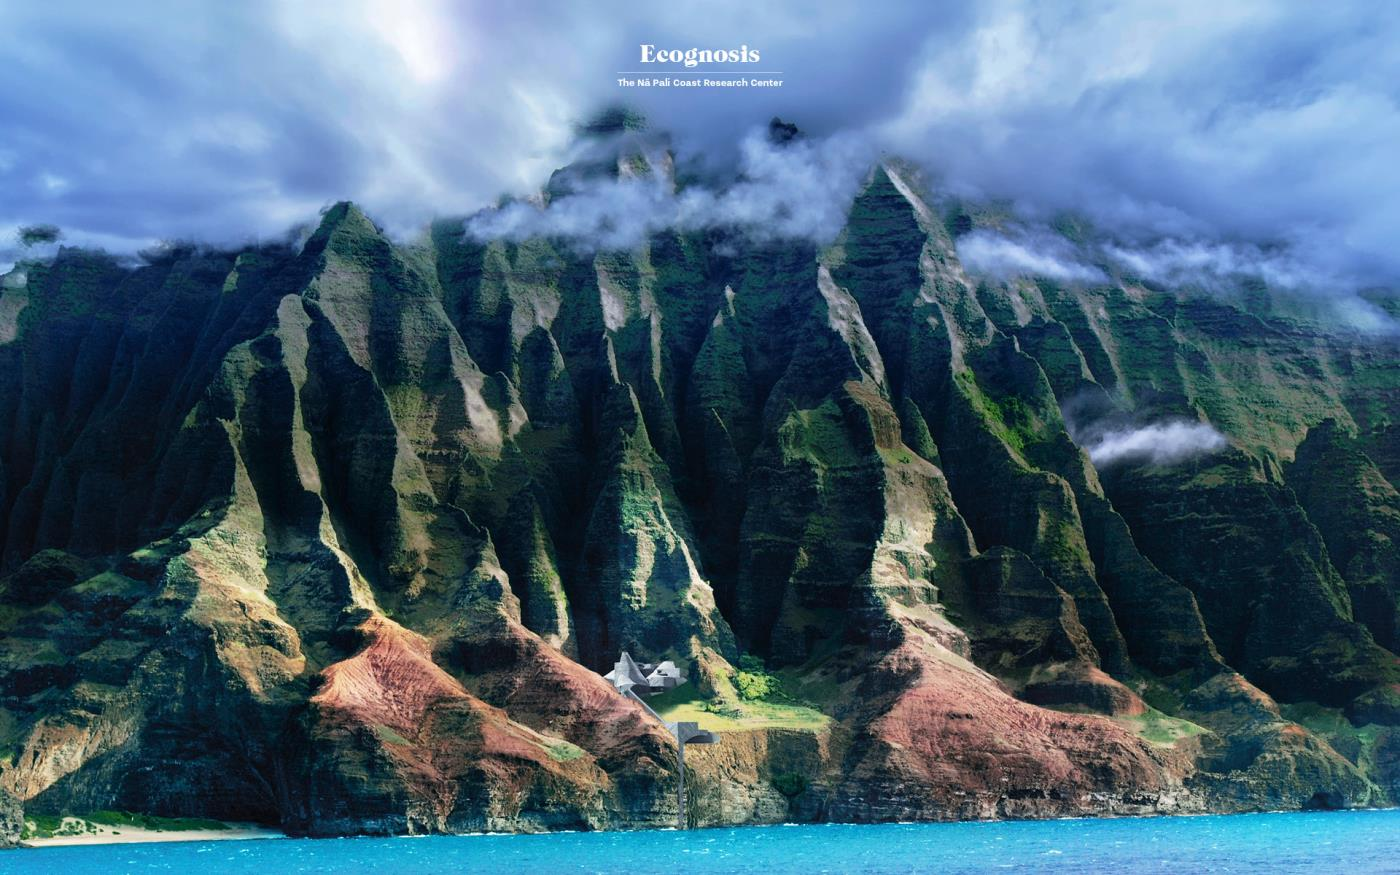 Ecognosis: The Na Pali Coast Research Center